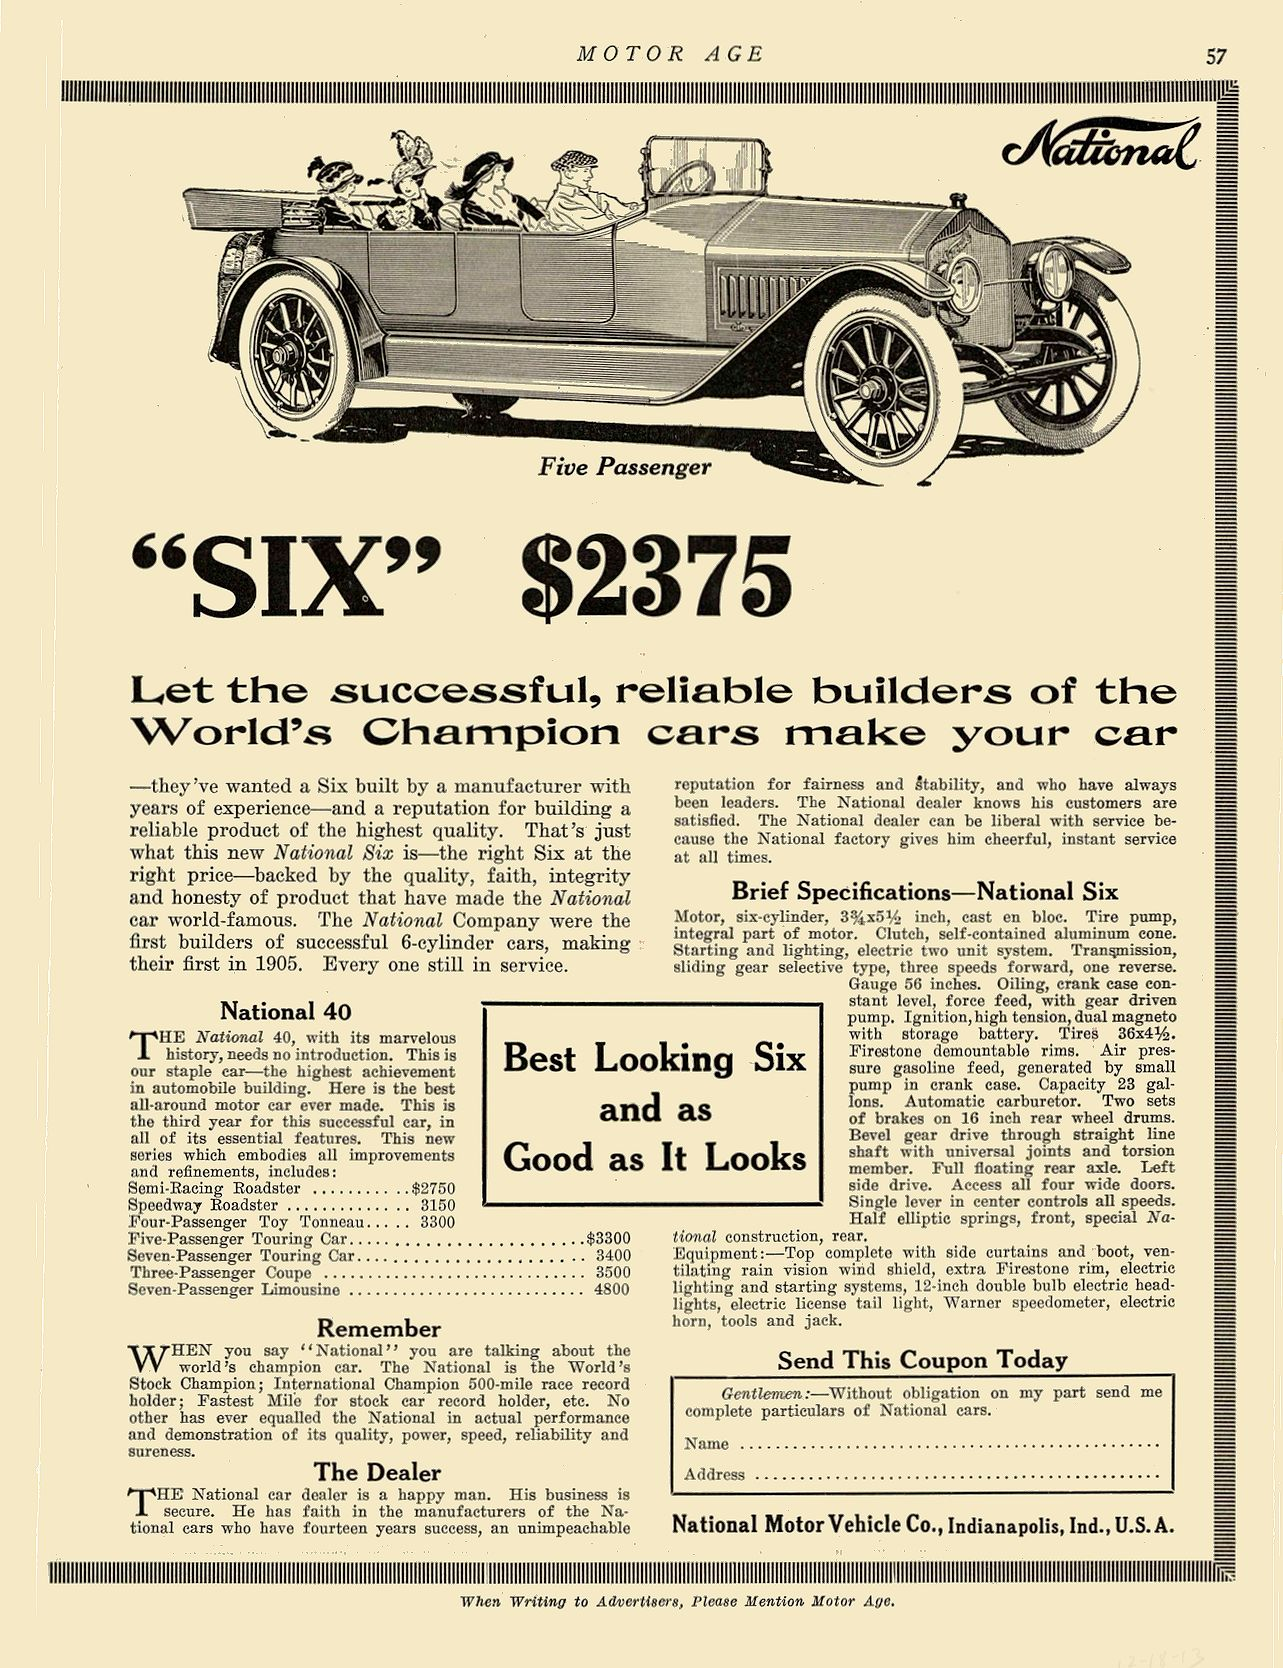 """1913 12 18 1914 NATIONAL National """"SIX"""" $2375 Best Looking Six and as Good as It Looks National Motor Vehicle Co. Indianapolis, IND MOTOR AGE December 18, 1913 8.5″x12″ page 57"""